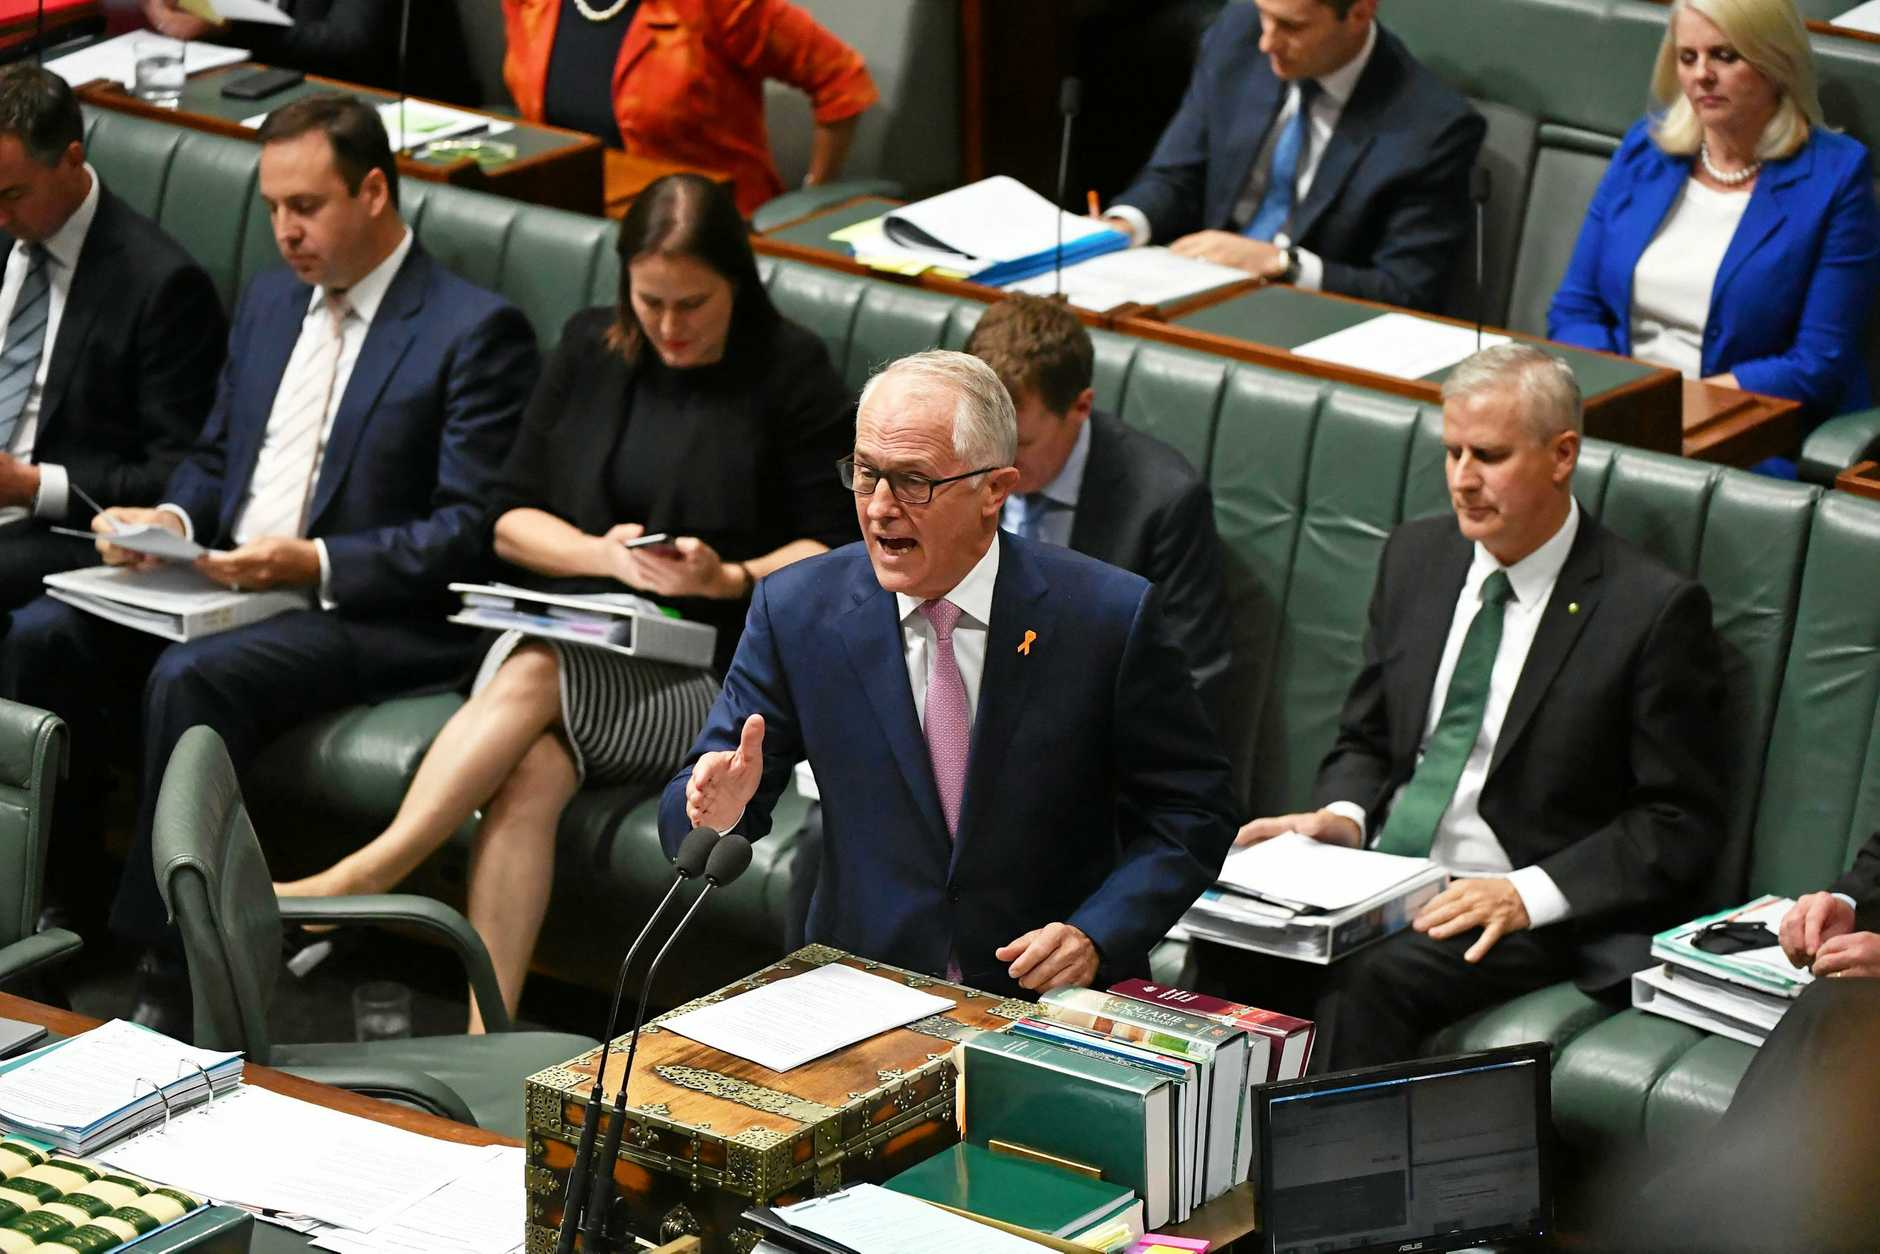 Prime Minister Malcolm Turnbull during Question Time in the House of Representatives at Parliament House in Canberra. (AAP Image/Mick Tsikas)